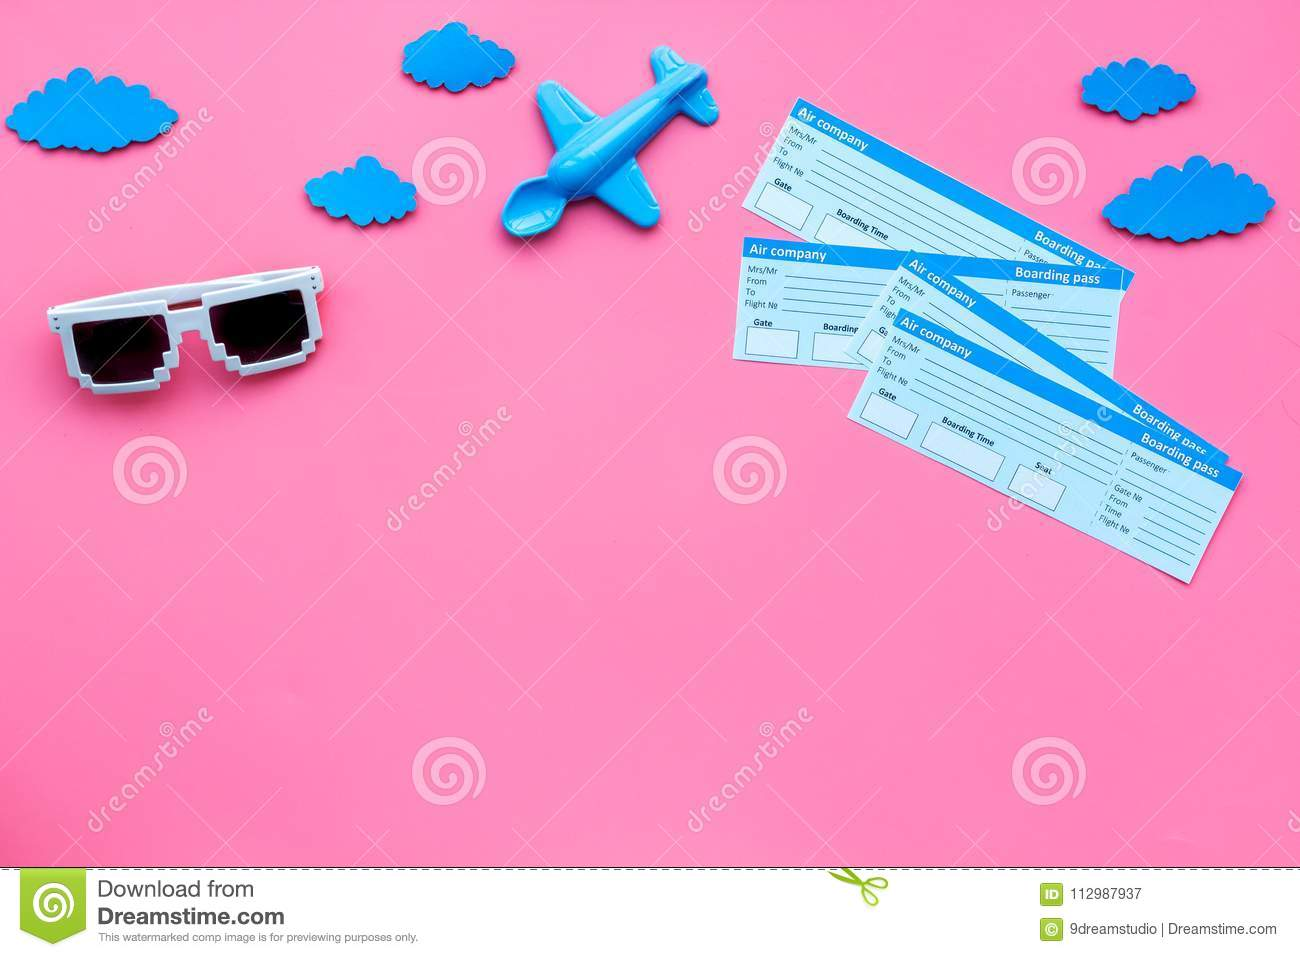 Sample of airplane ticket. Family trip with kid. Airplan toy and sun glasses. Pink background flat lay space for text